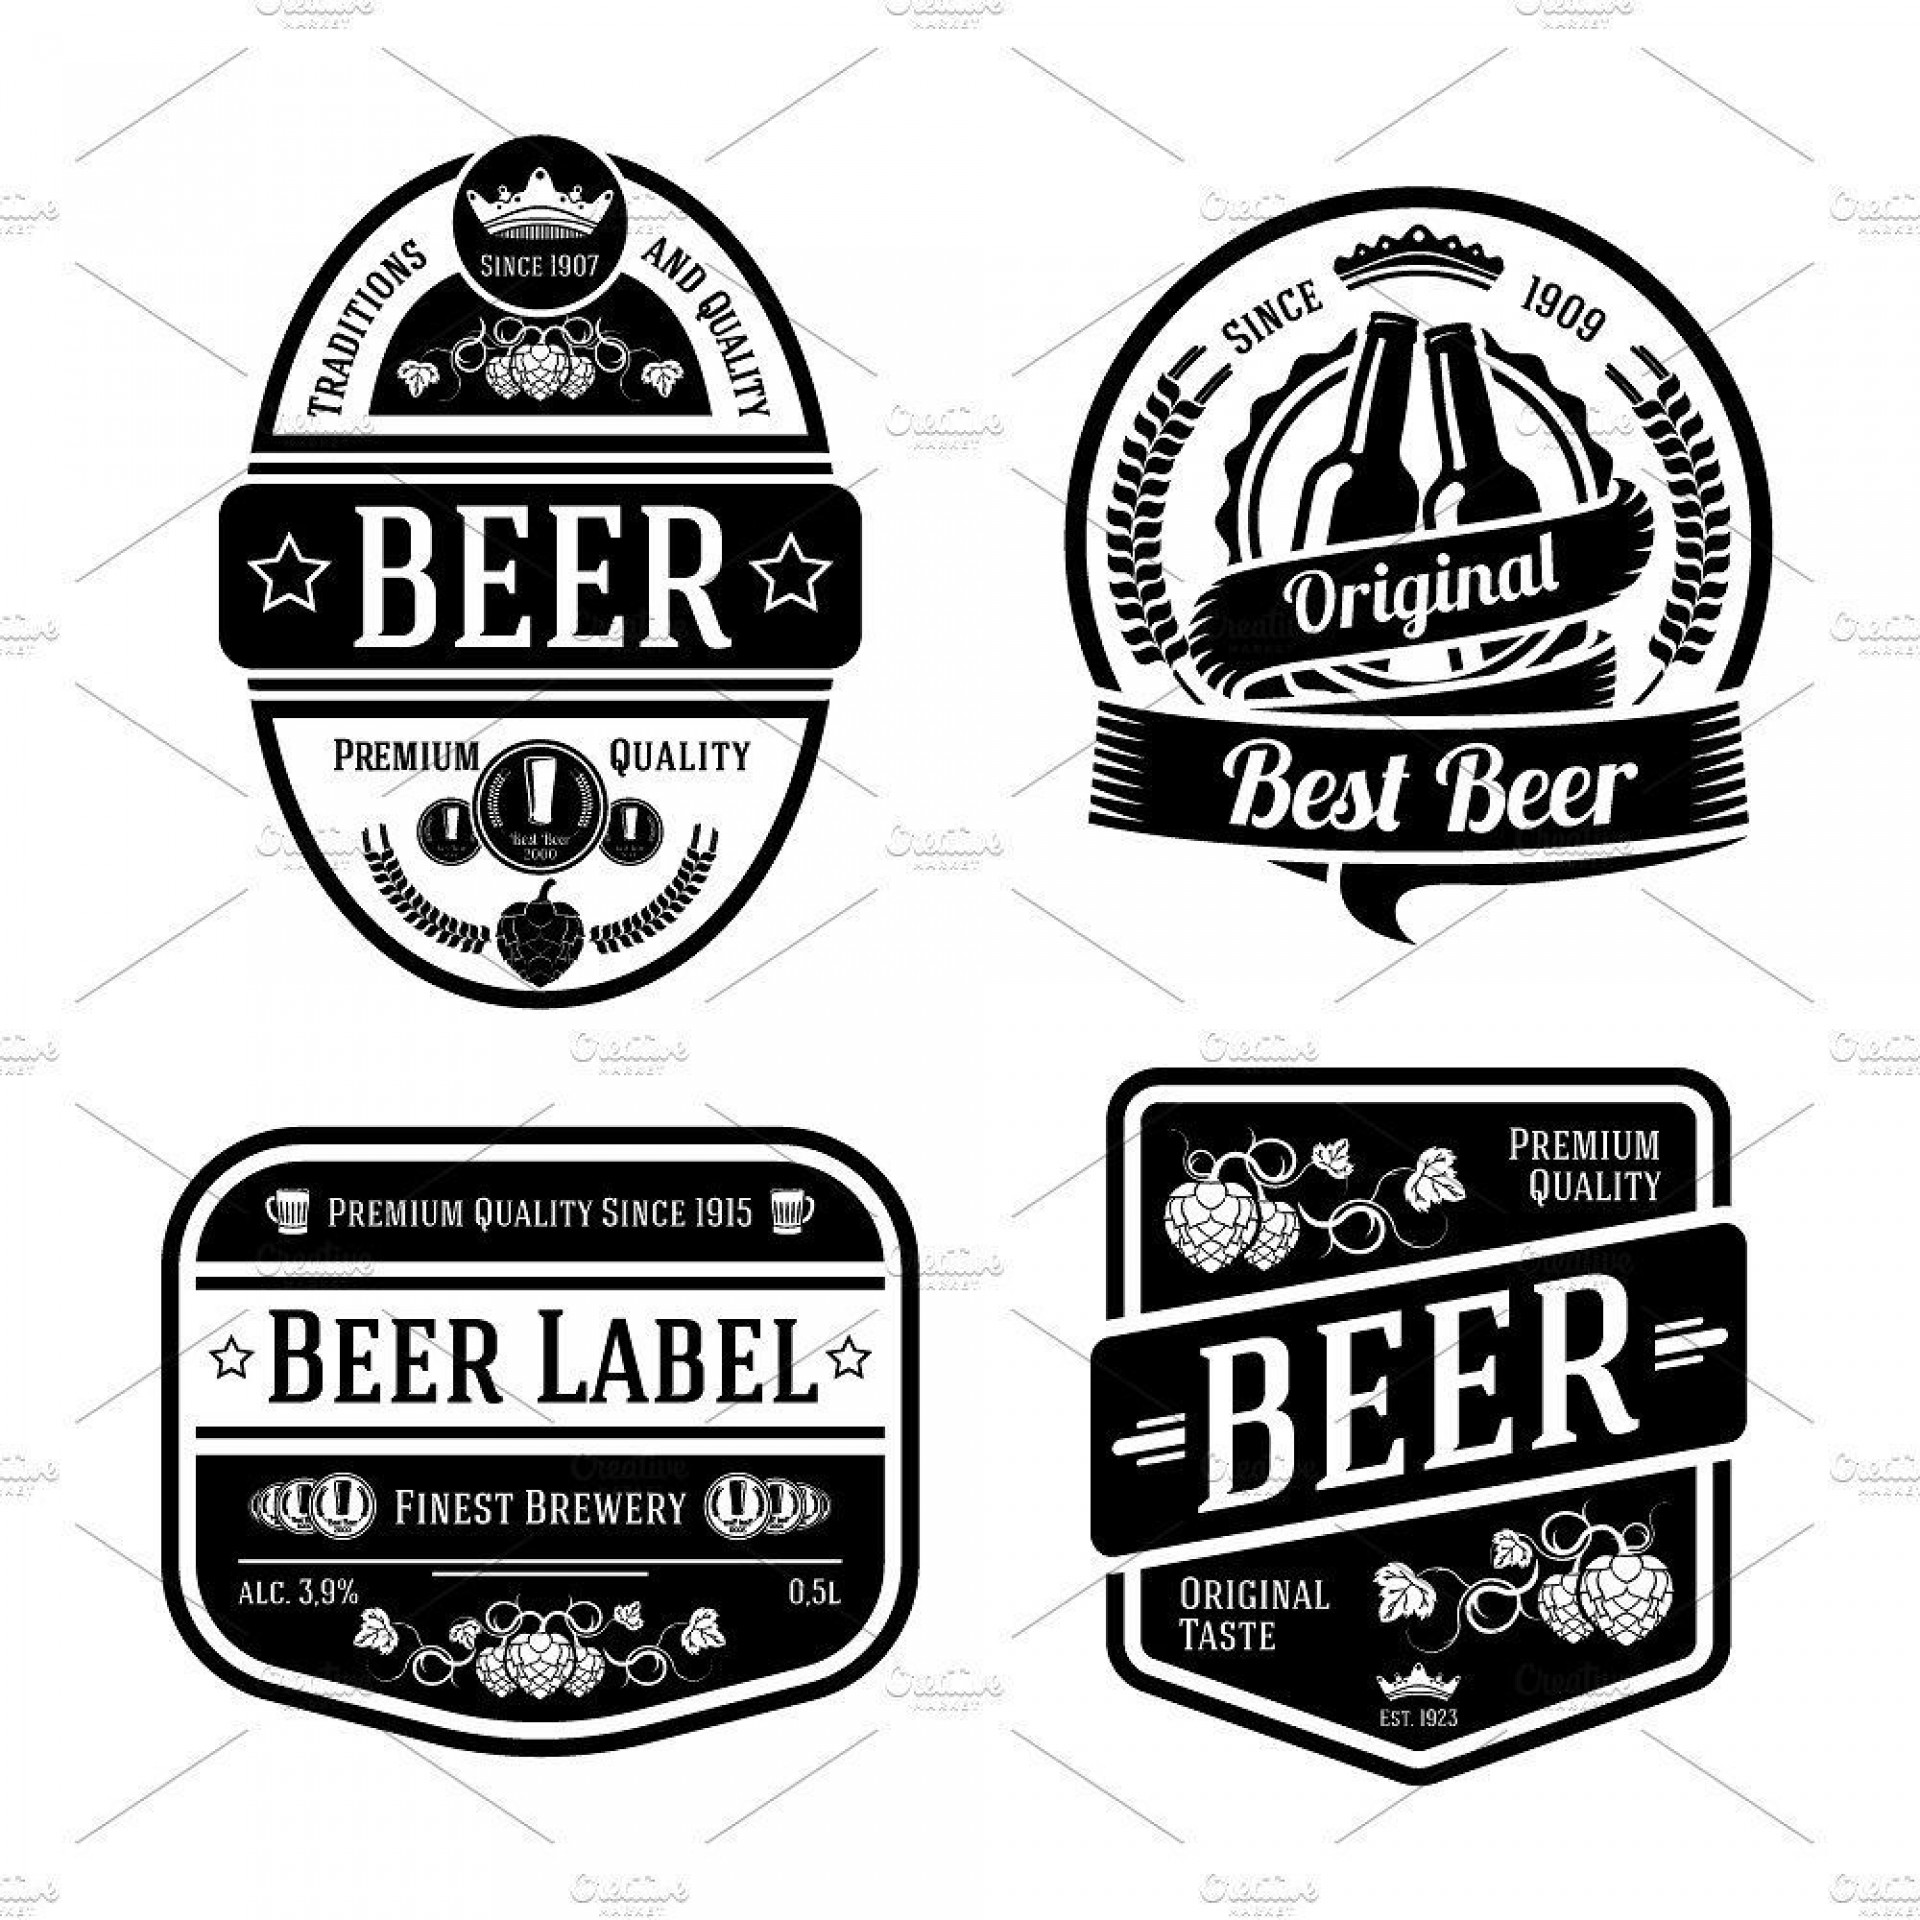 000 Wonderful Beer Label Design Template High Resolution  Free1920